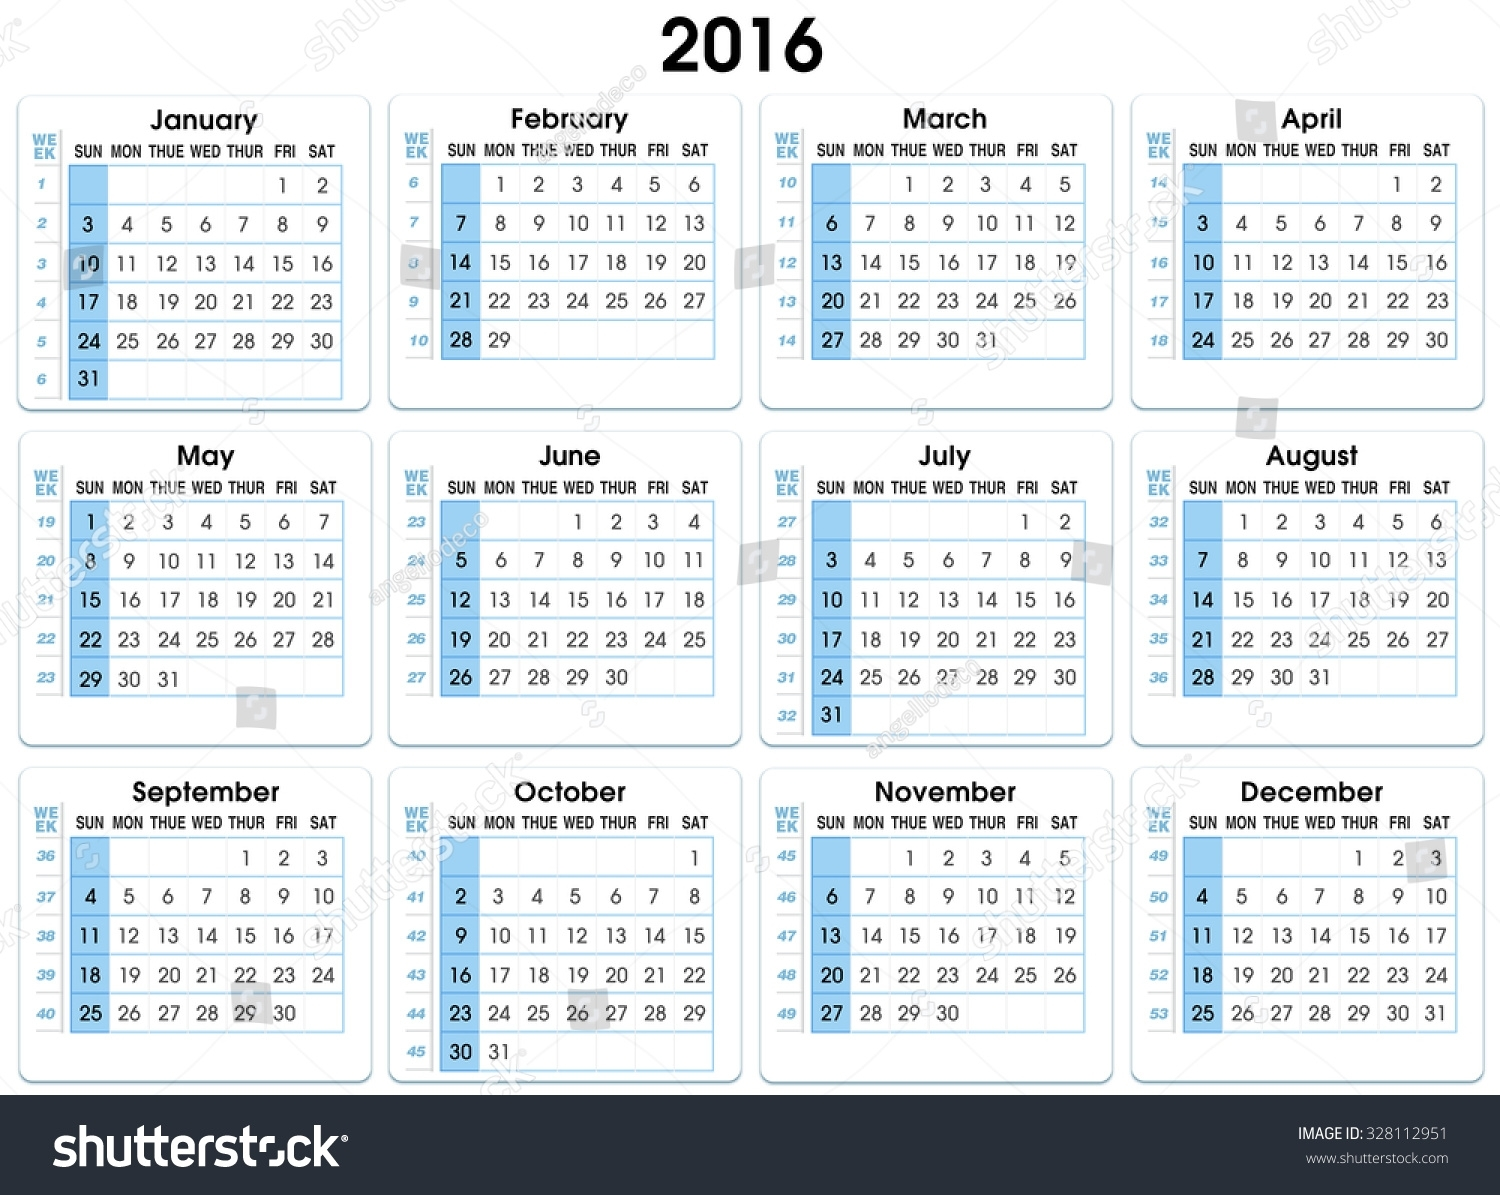 Royalty Free Stock Illustration Of Calendar 2016 12 Months with Calendar With The Months Number